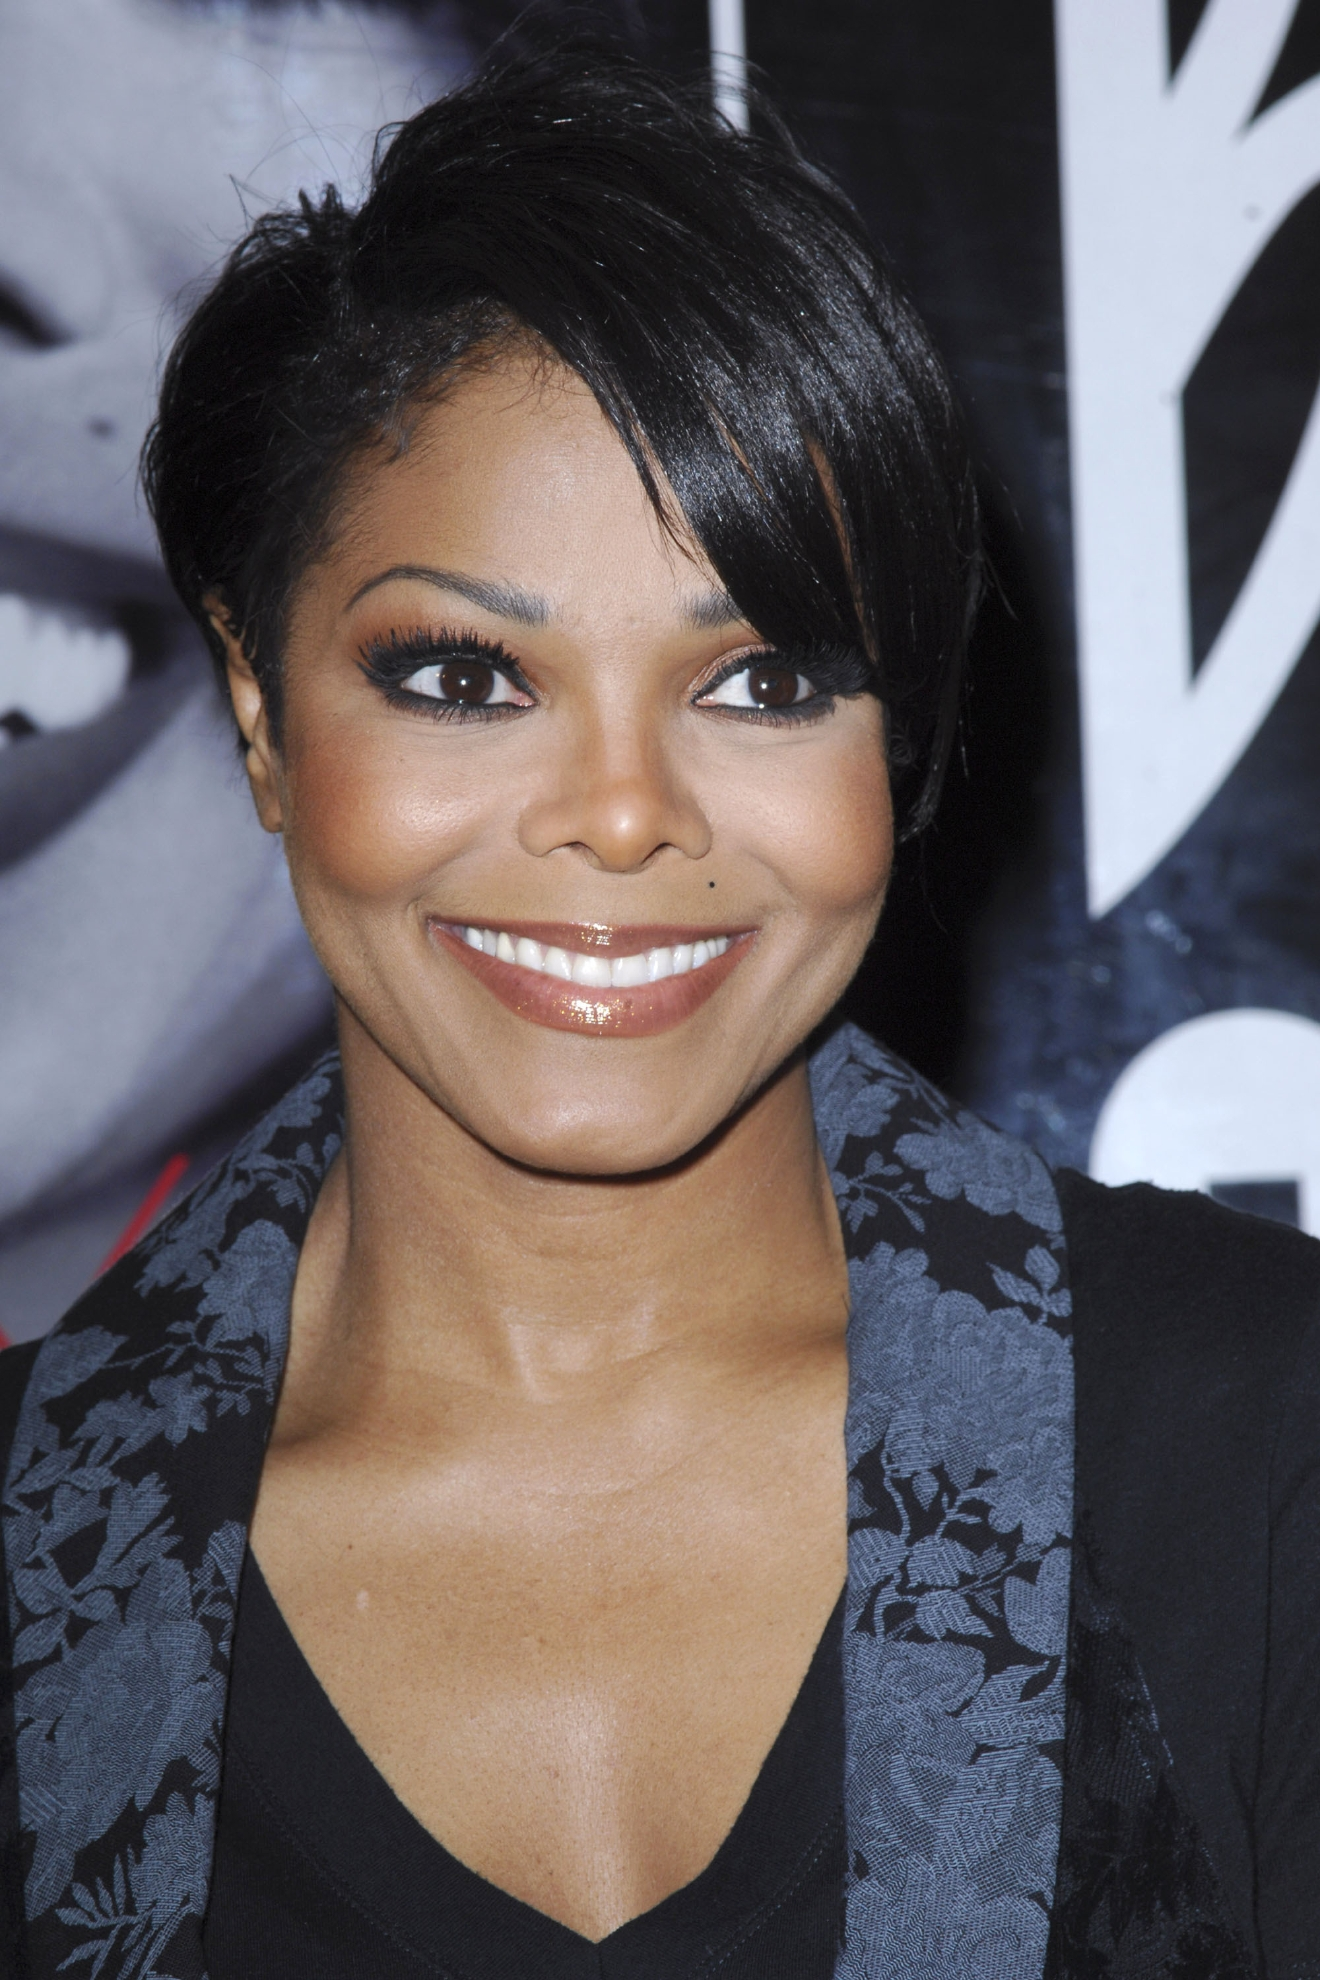 Janet Jackson Janet Jackson  attends the book signing for  'True You: A Journey to Finding and Loving Yourself'  at Book Soup in West Hollywood Los Angeles, California - 15.04.11  Featuring: Janet Jackson Where: CA, United States When: 15 Apr 2011 Credit: Apega/WENN